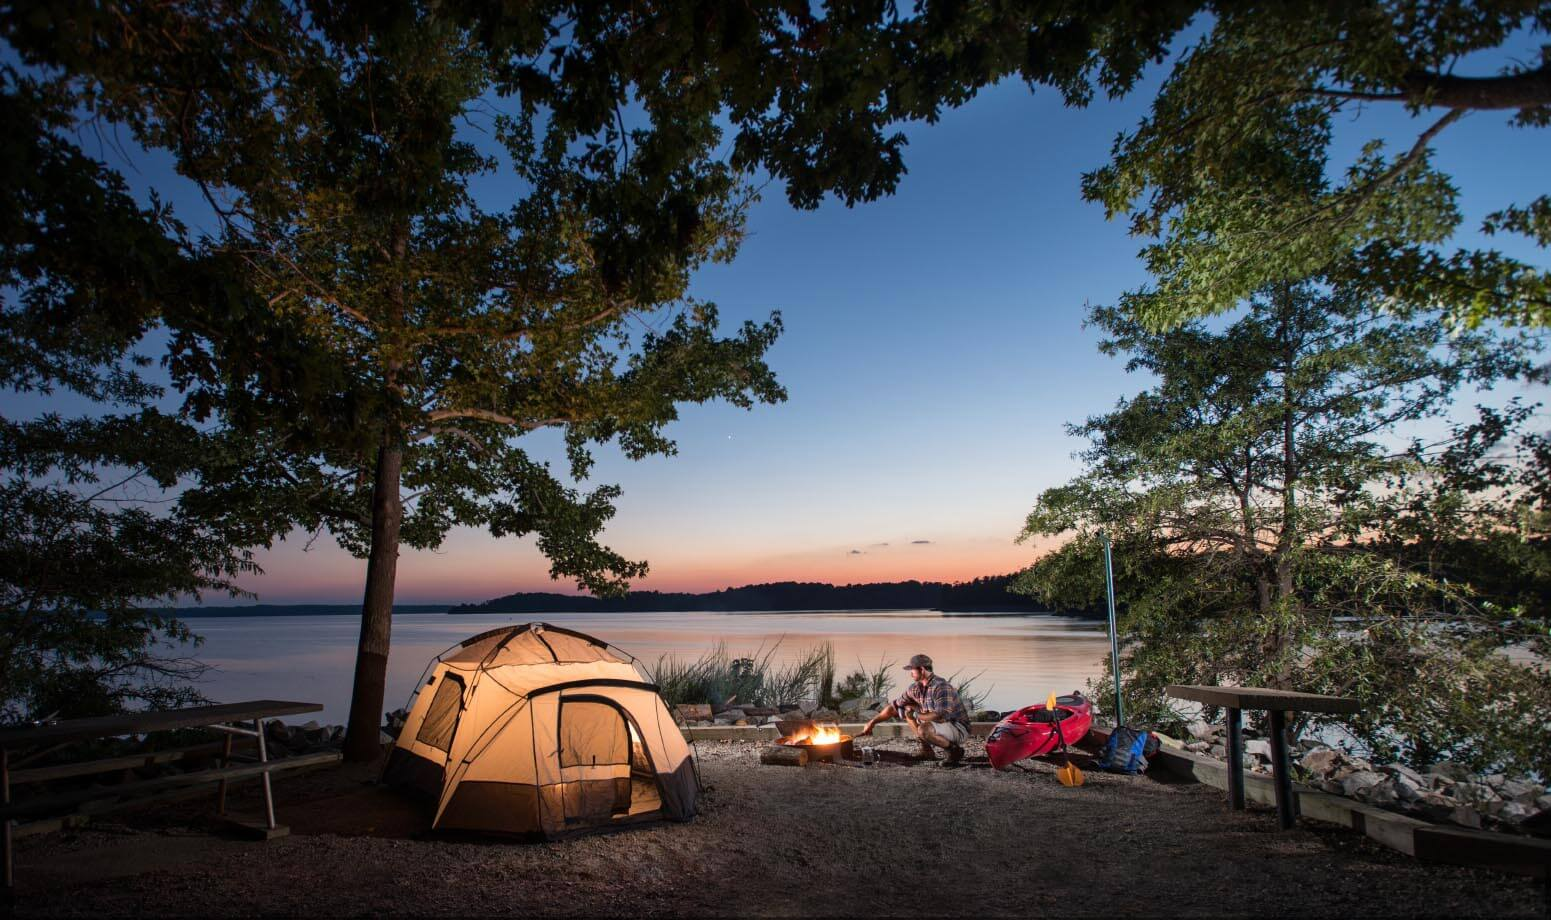 What to Consider When Choosing a Campground